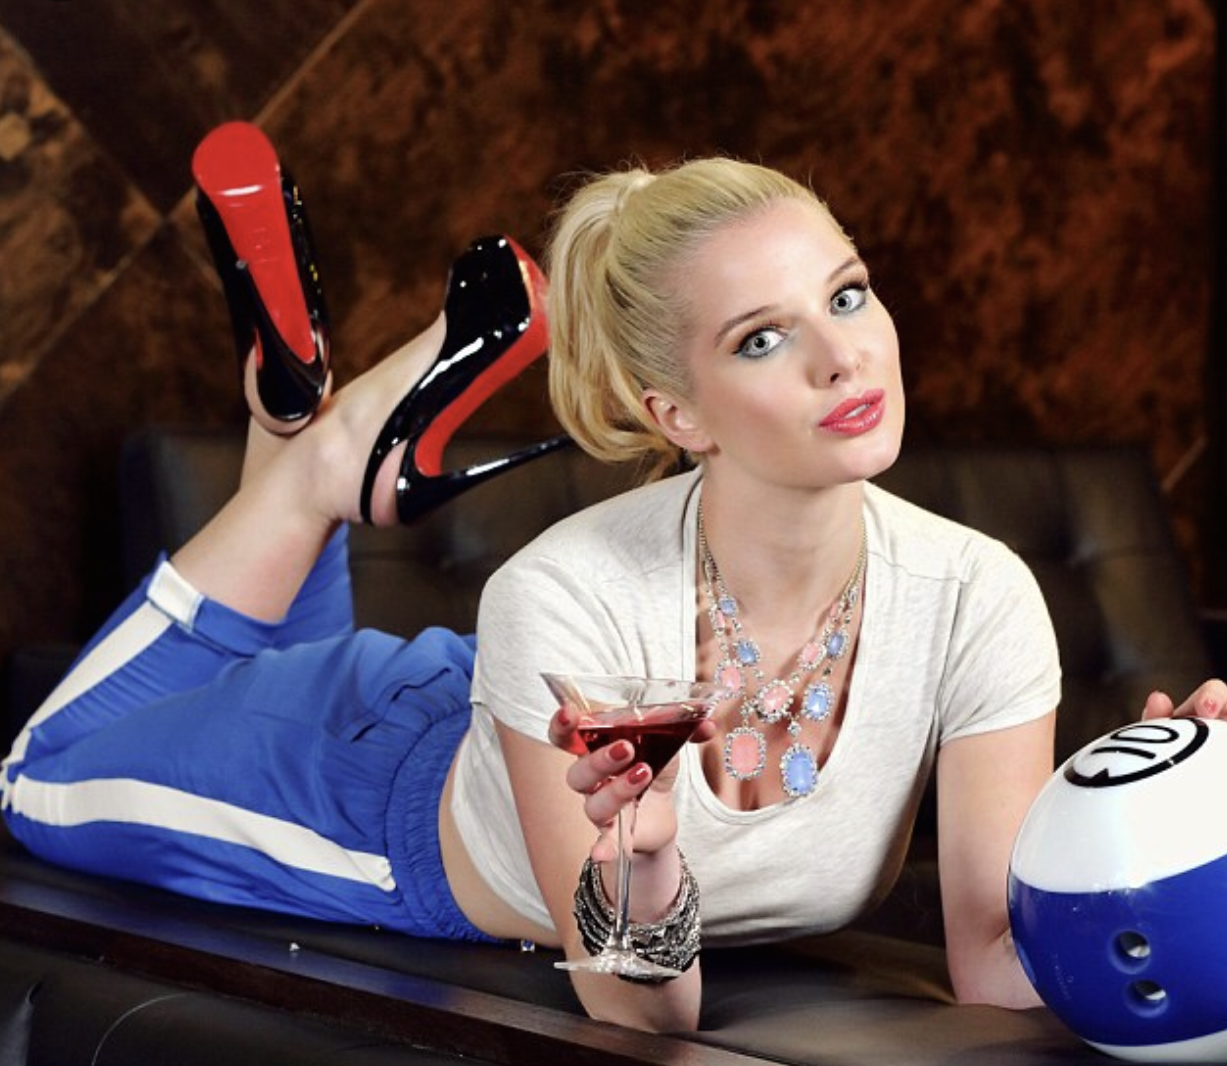 cheers blonde model at the bowling alley